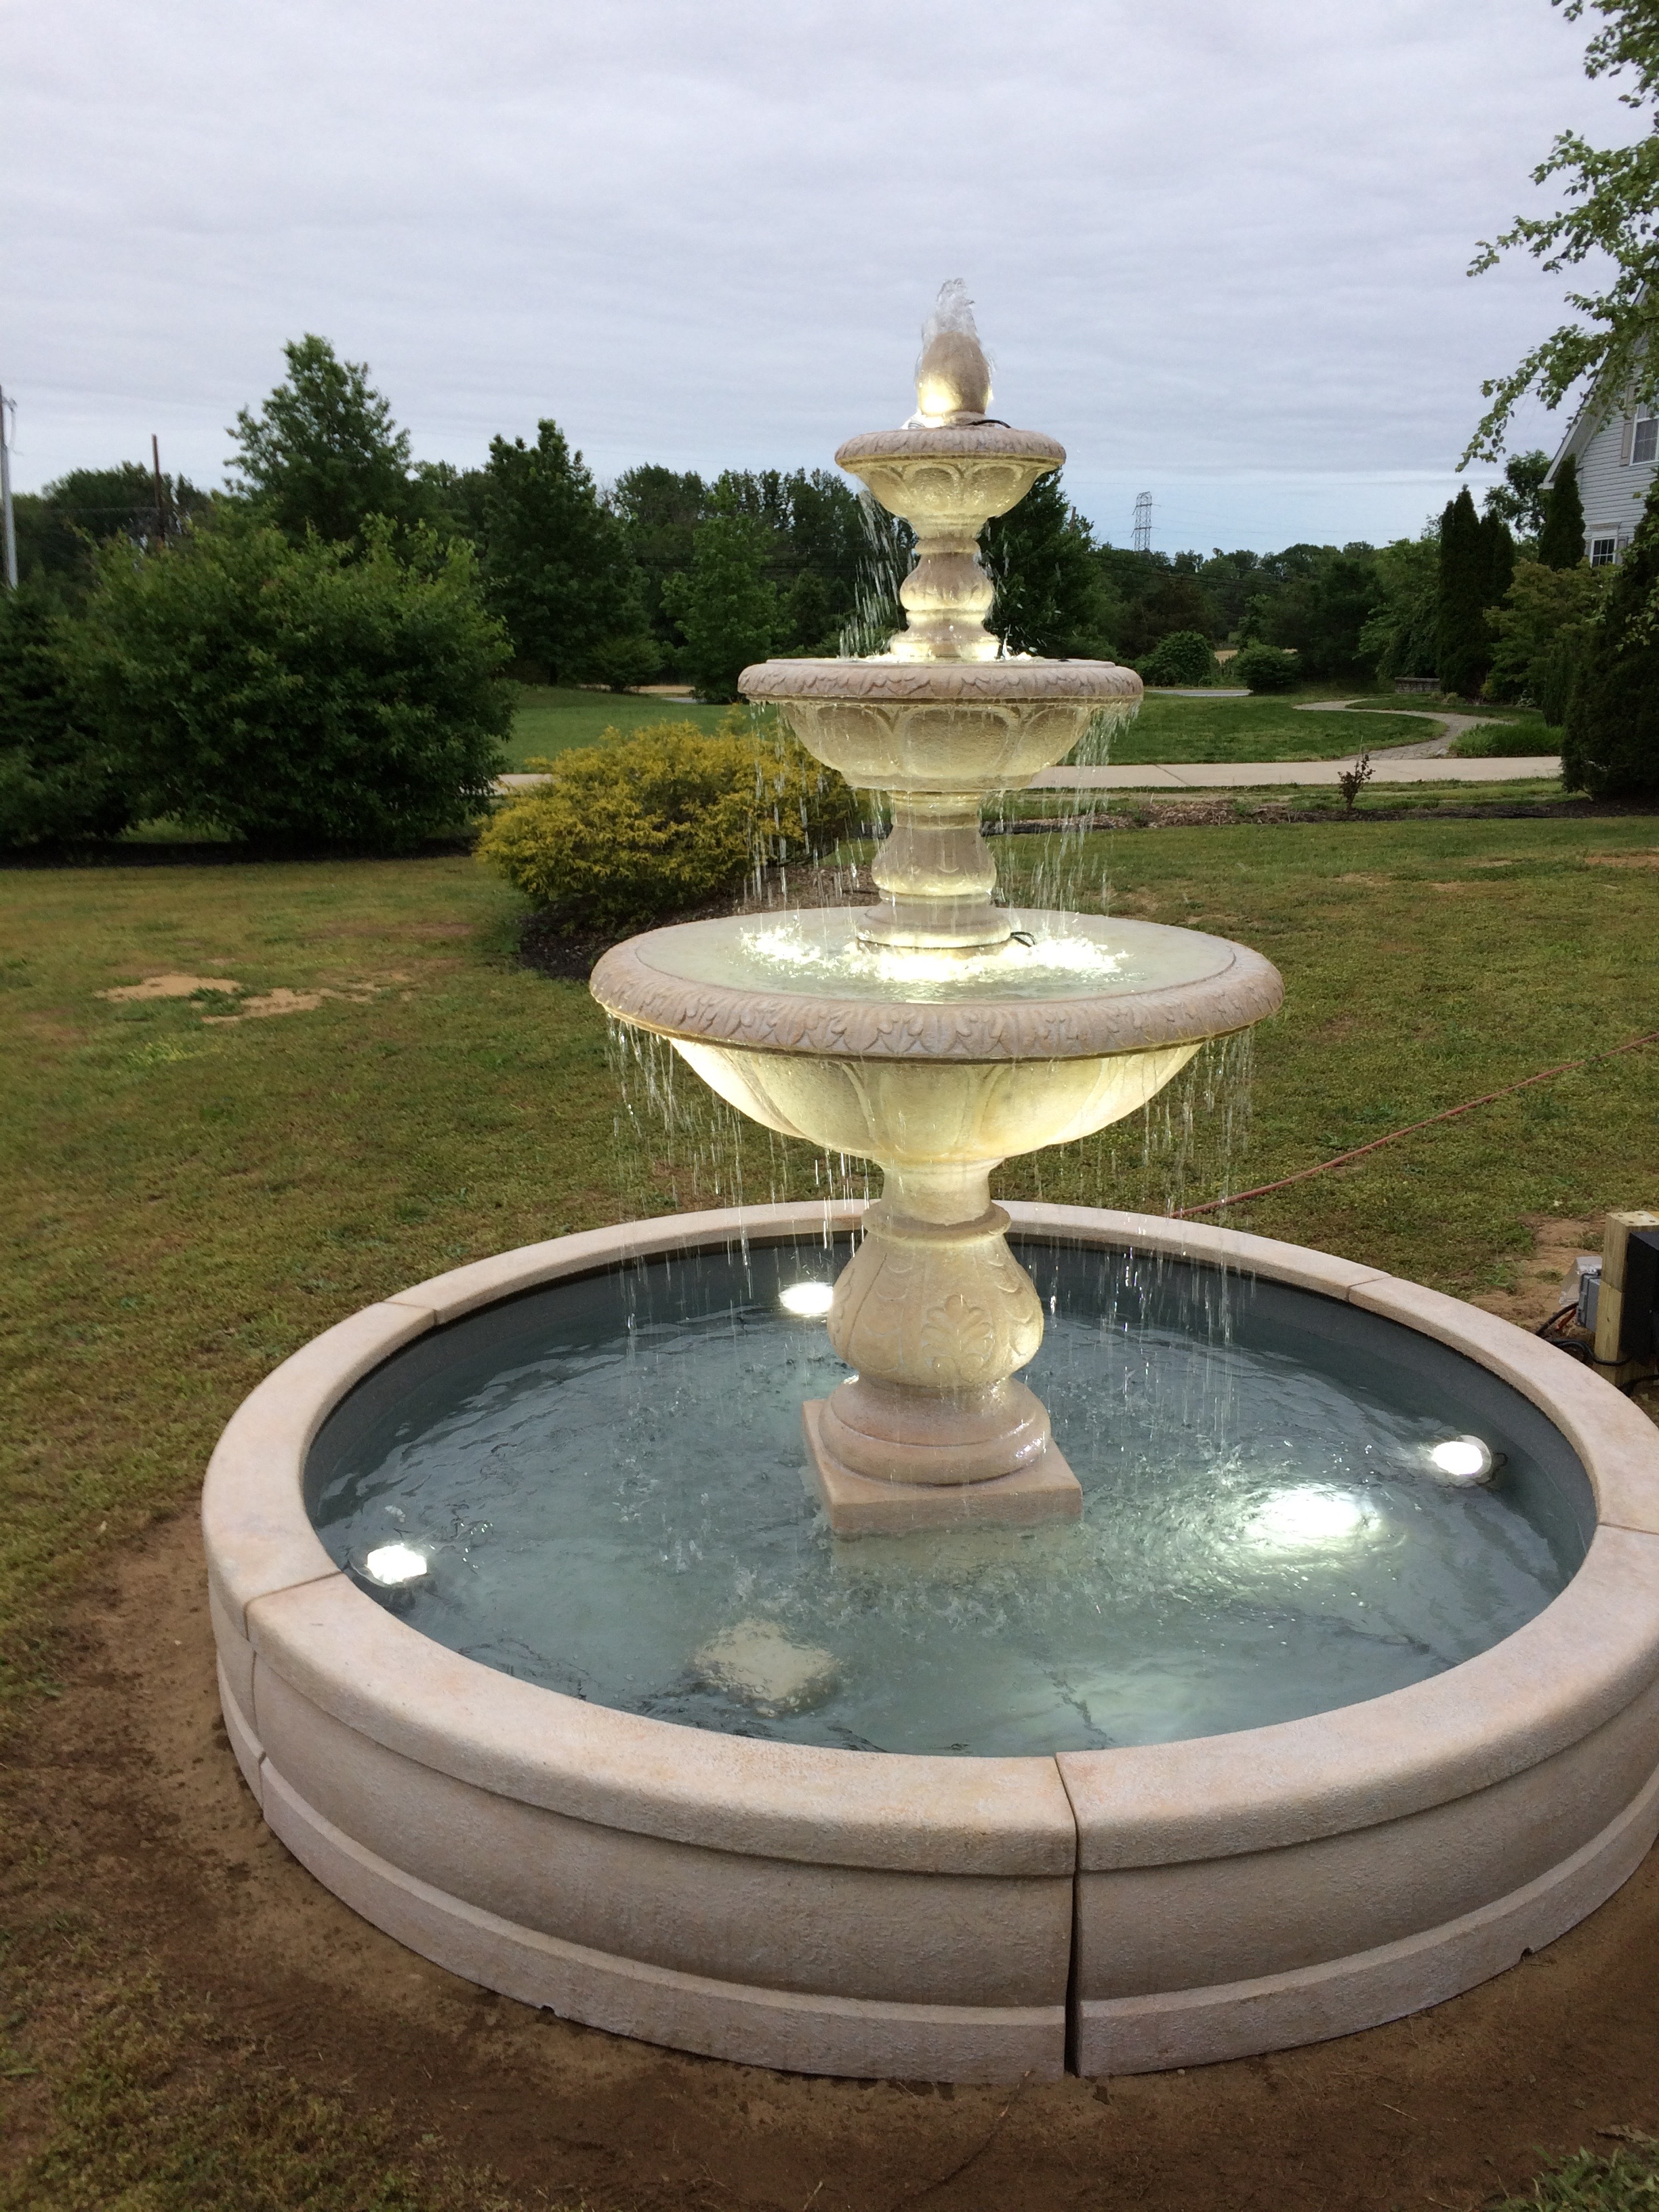 "3731 88"" Windley Key Fountain with Surround and 8' Fiberglass Pool With LED Light Kit"